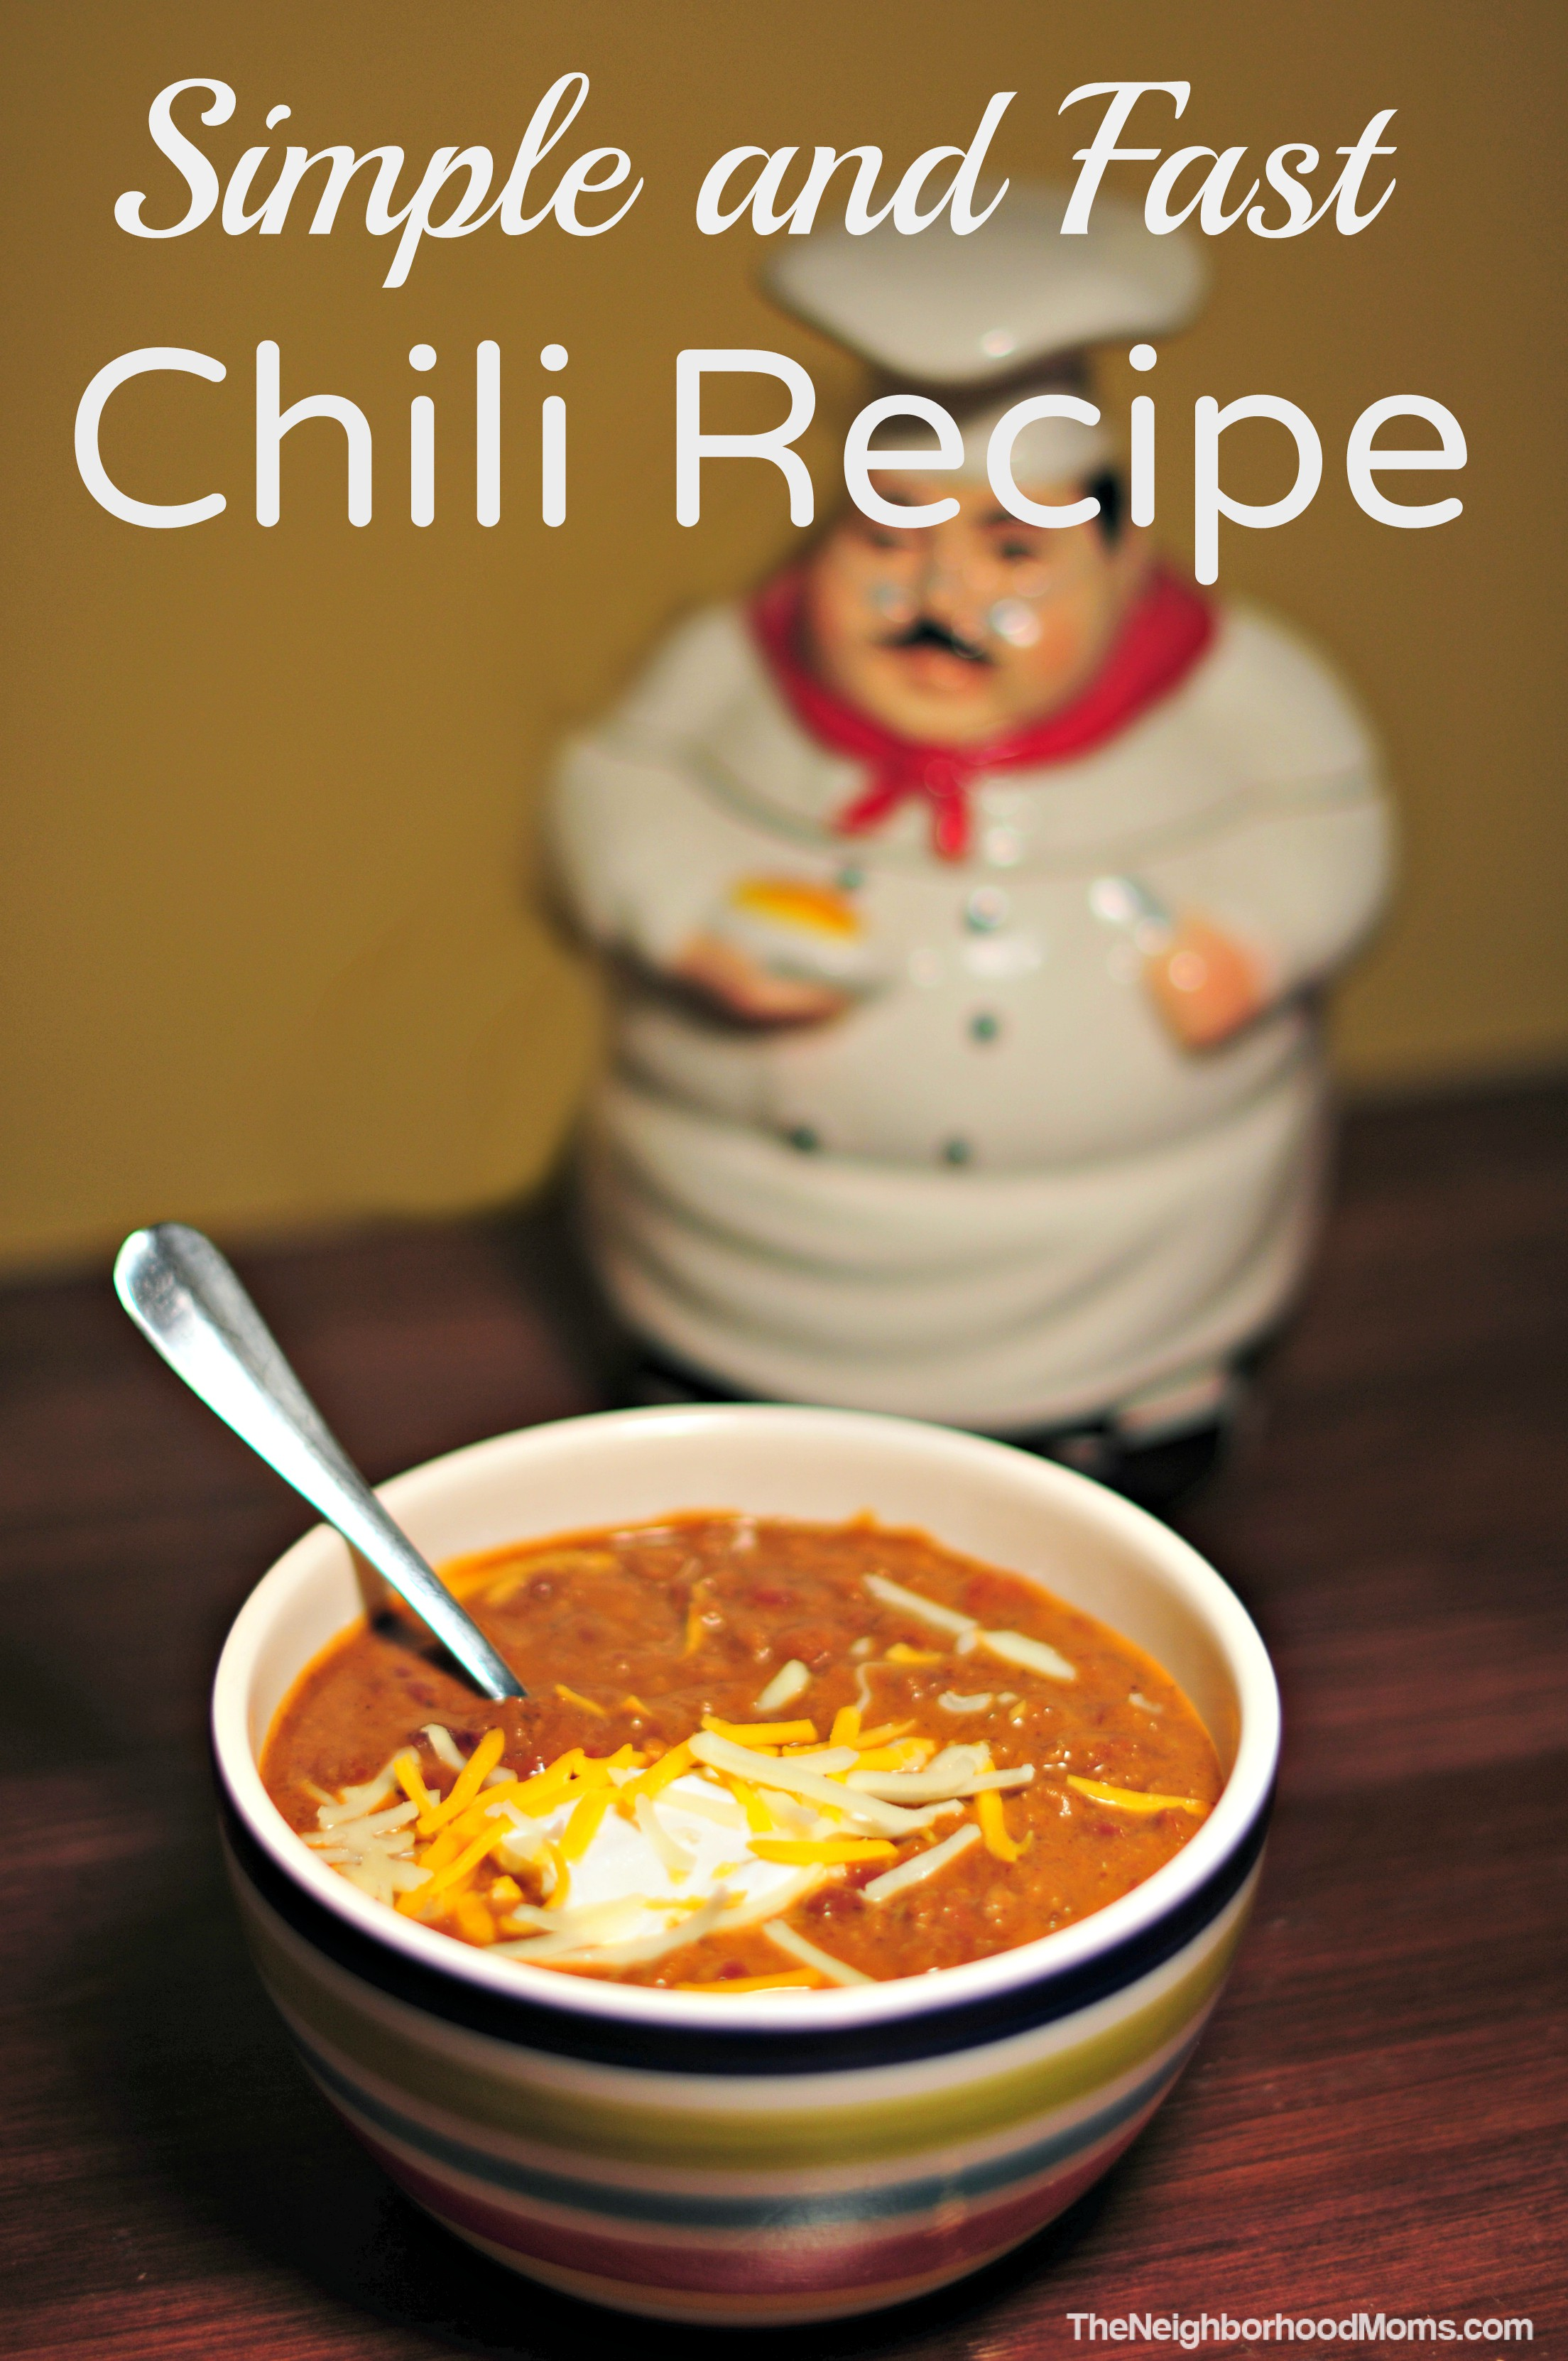 Simple and Fast Chili Recipe - The Neighborhood Moms